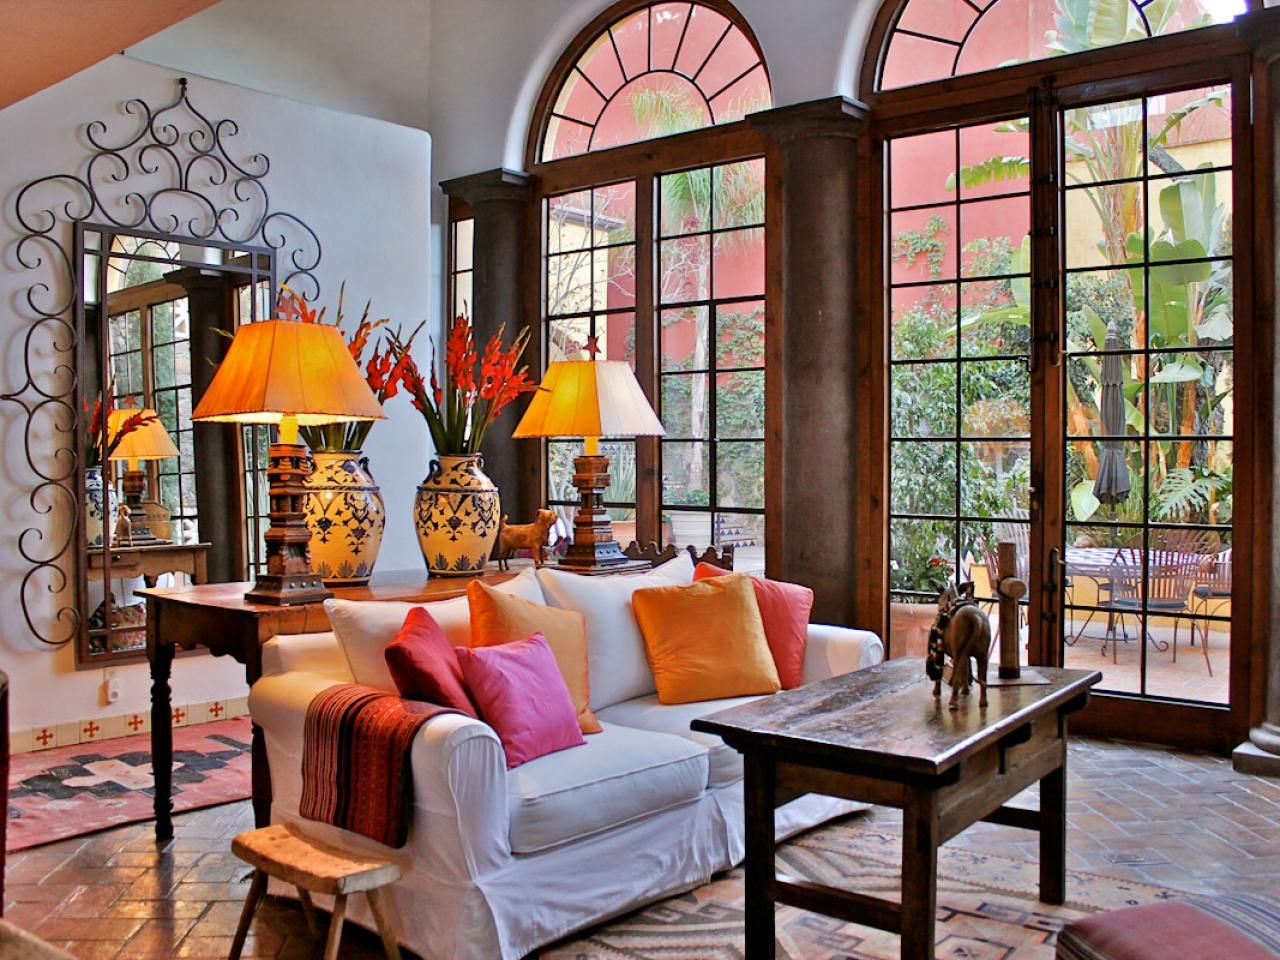 White Contemporary Living Room With Pink And Orange Accents Spanish Living Room Spanish Style Decor Mexican Living Rooms